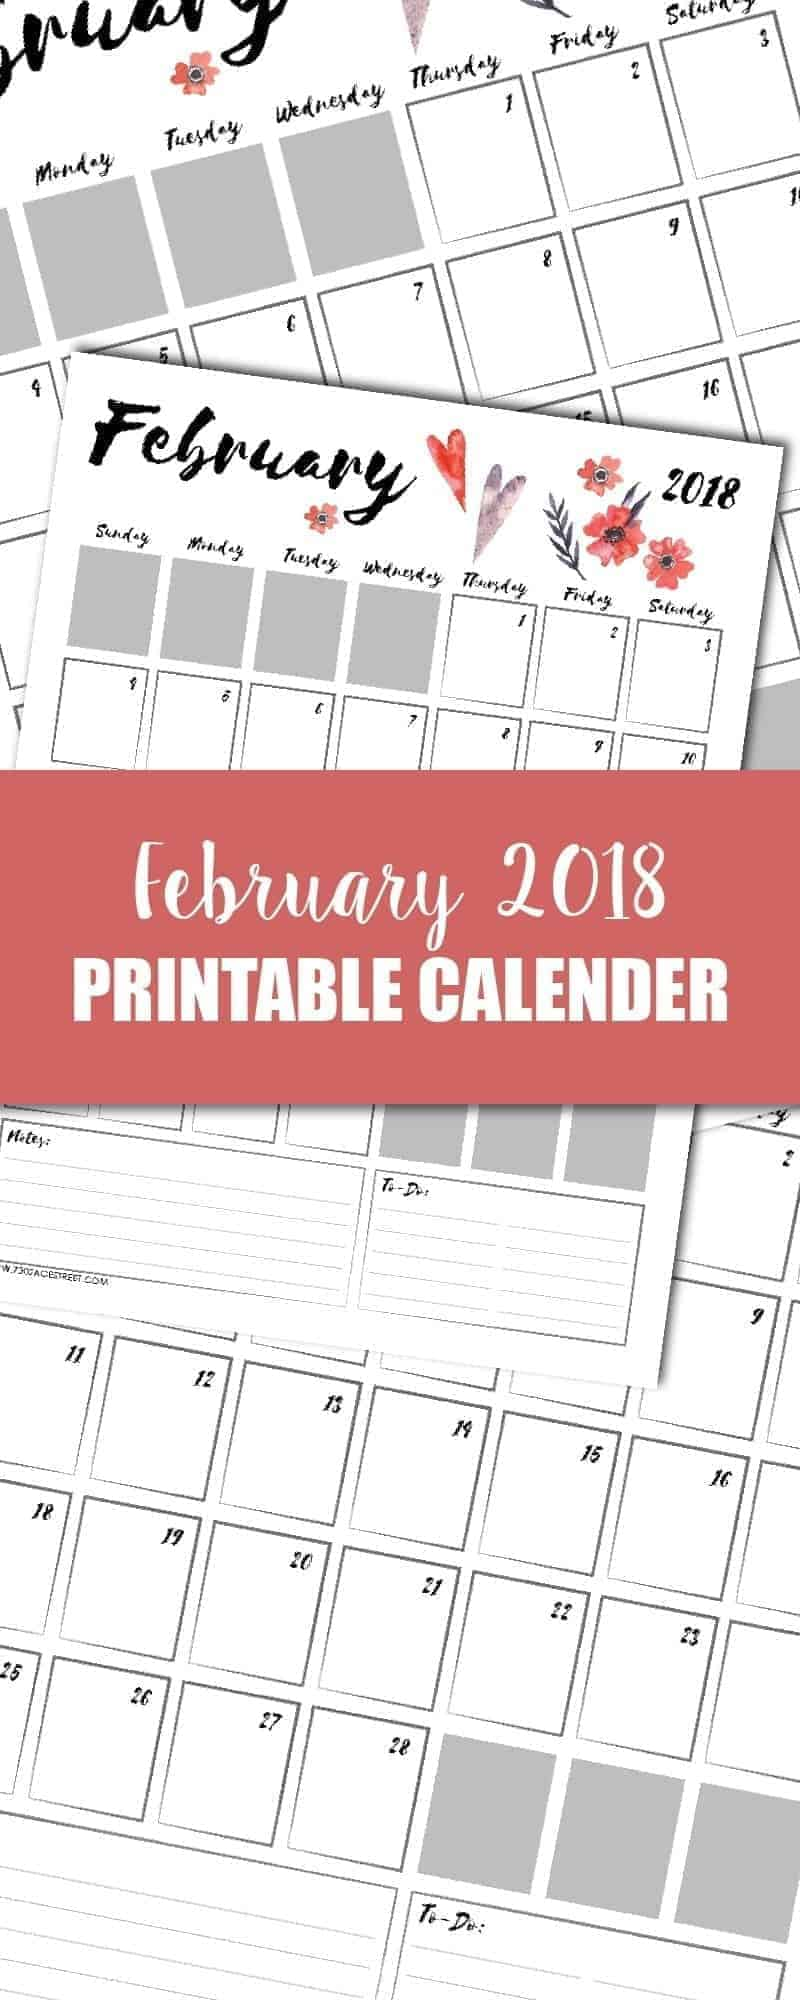 tall graphic showing a February 2018 printable calendar